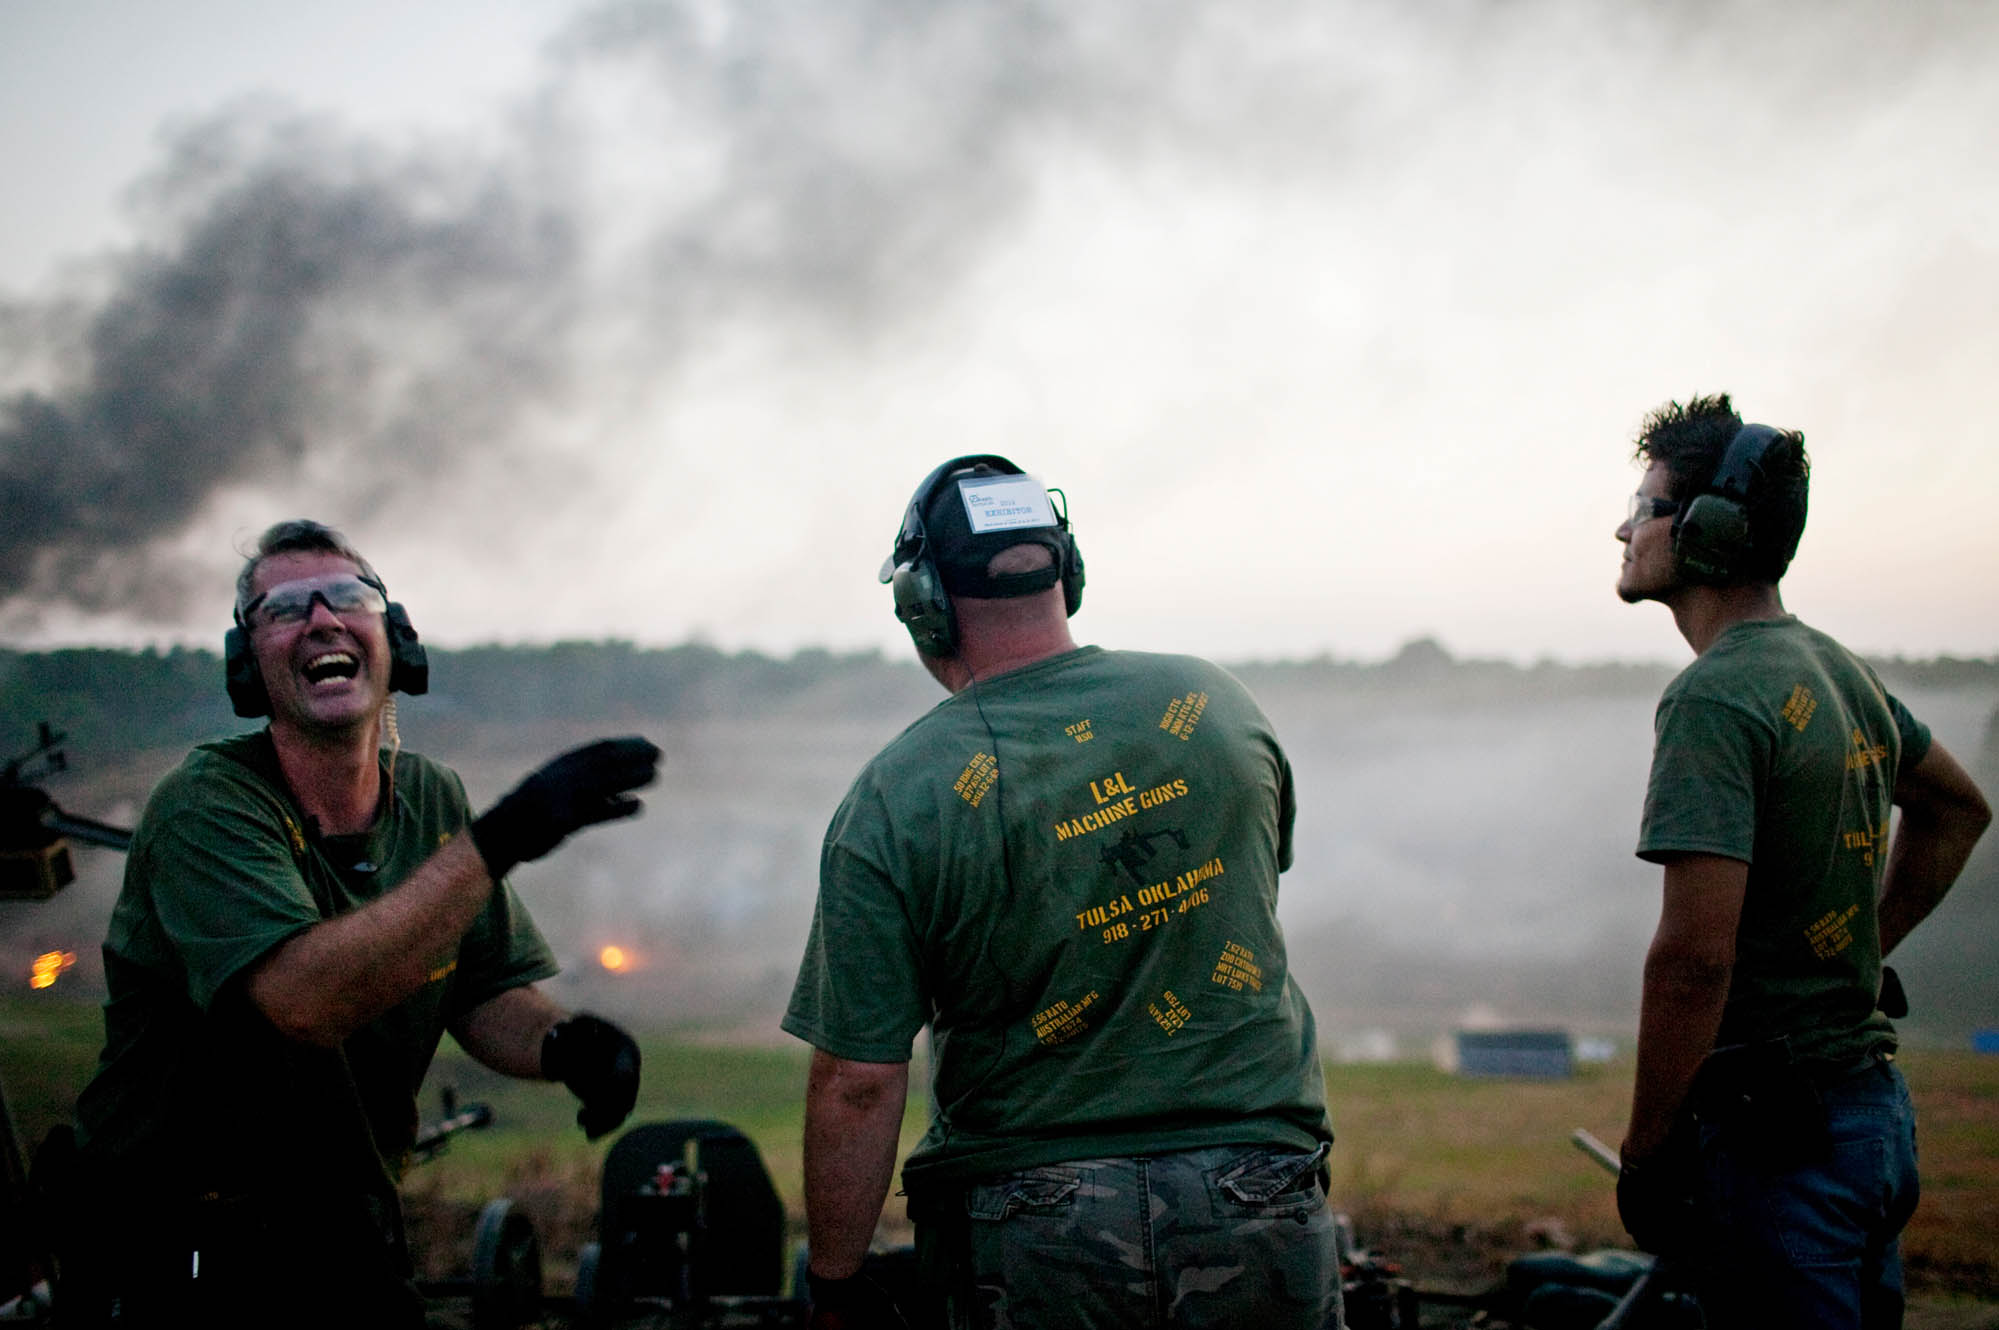 Members of the L&L Machine Gun's exhibition team joke on the firing line.